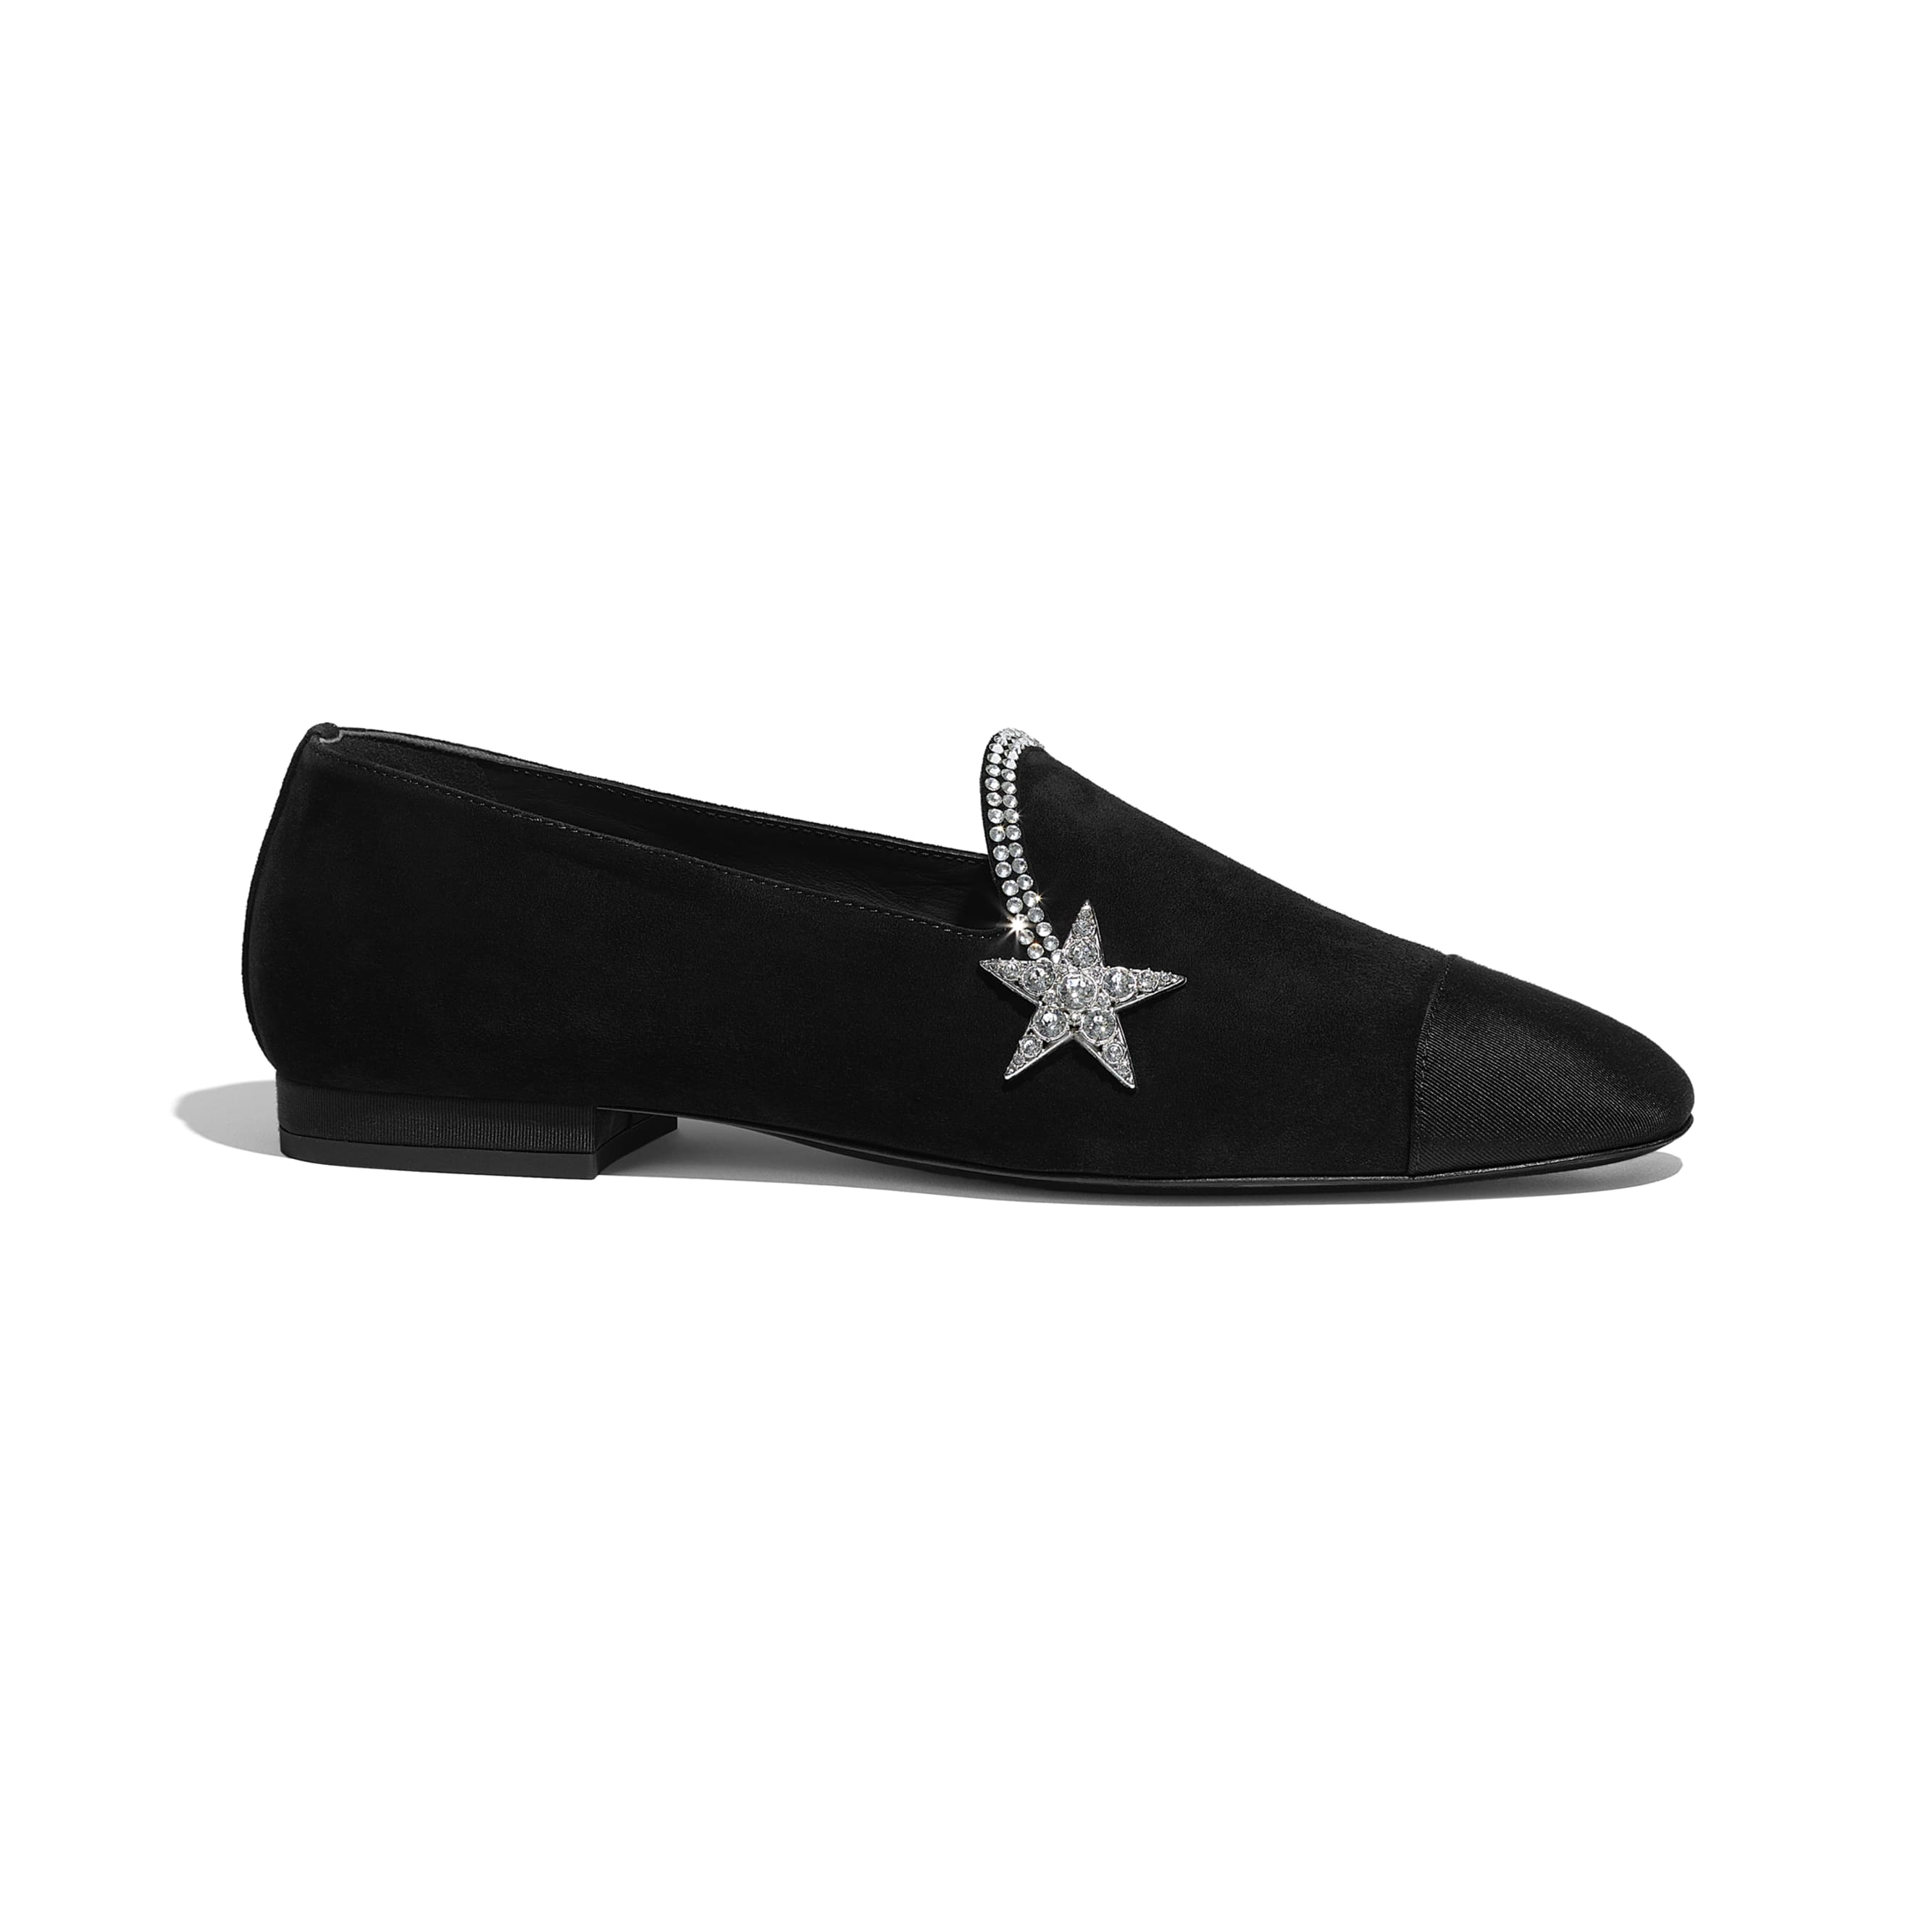 Loafers - Black - Suede Calfskin & Grosgrain - Default view - see standard sized version